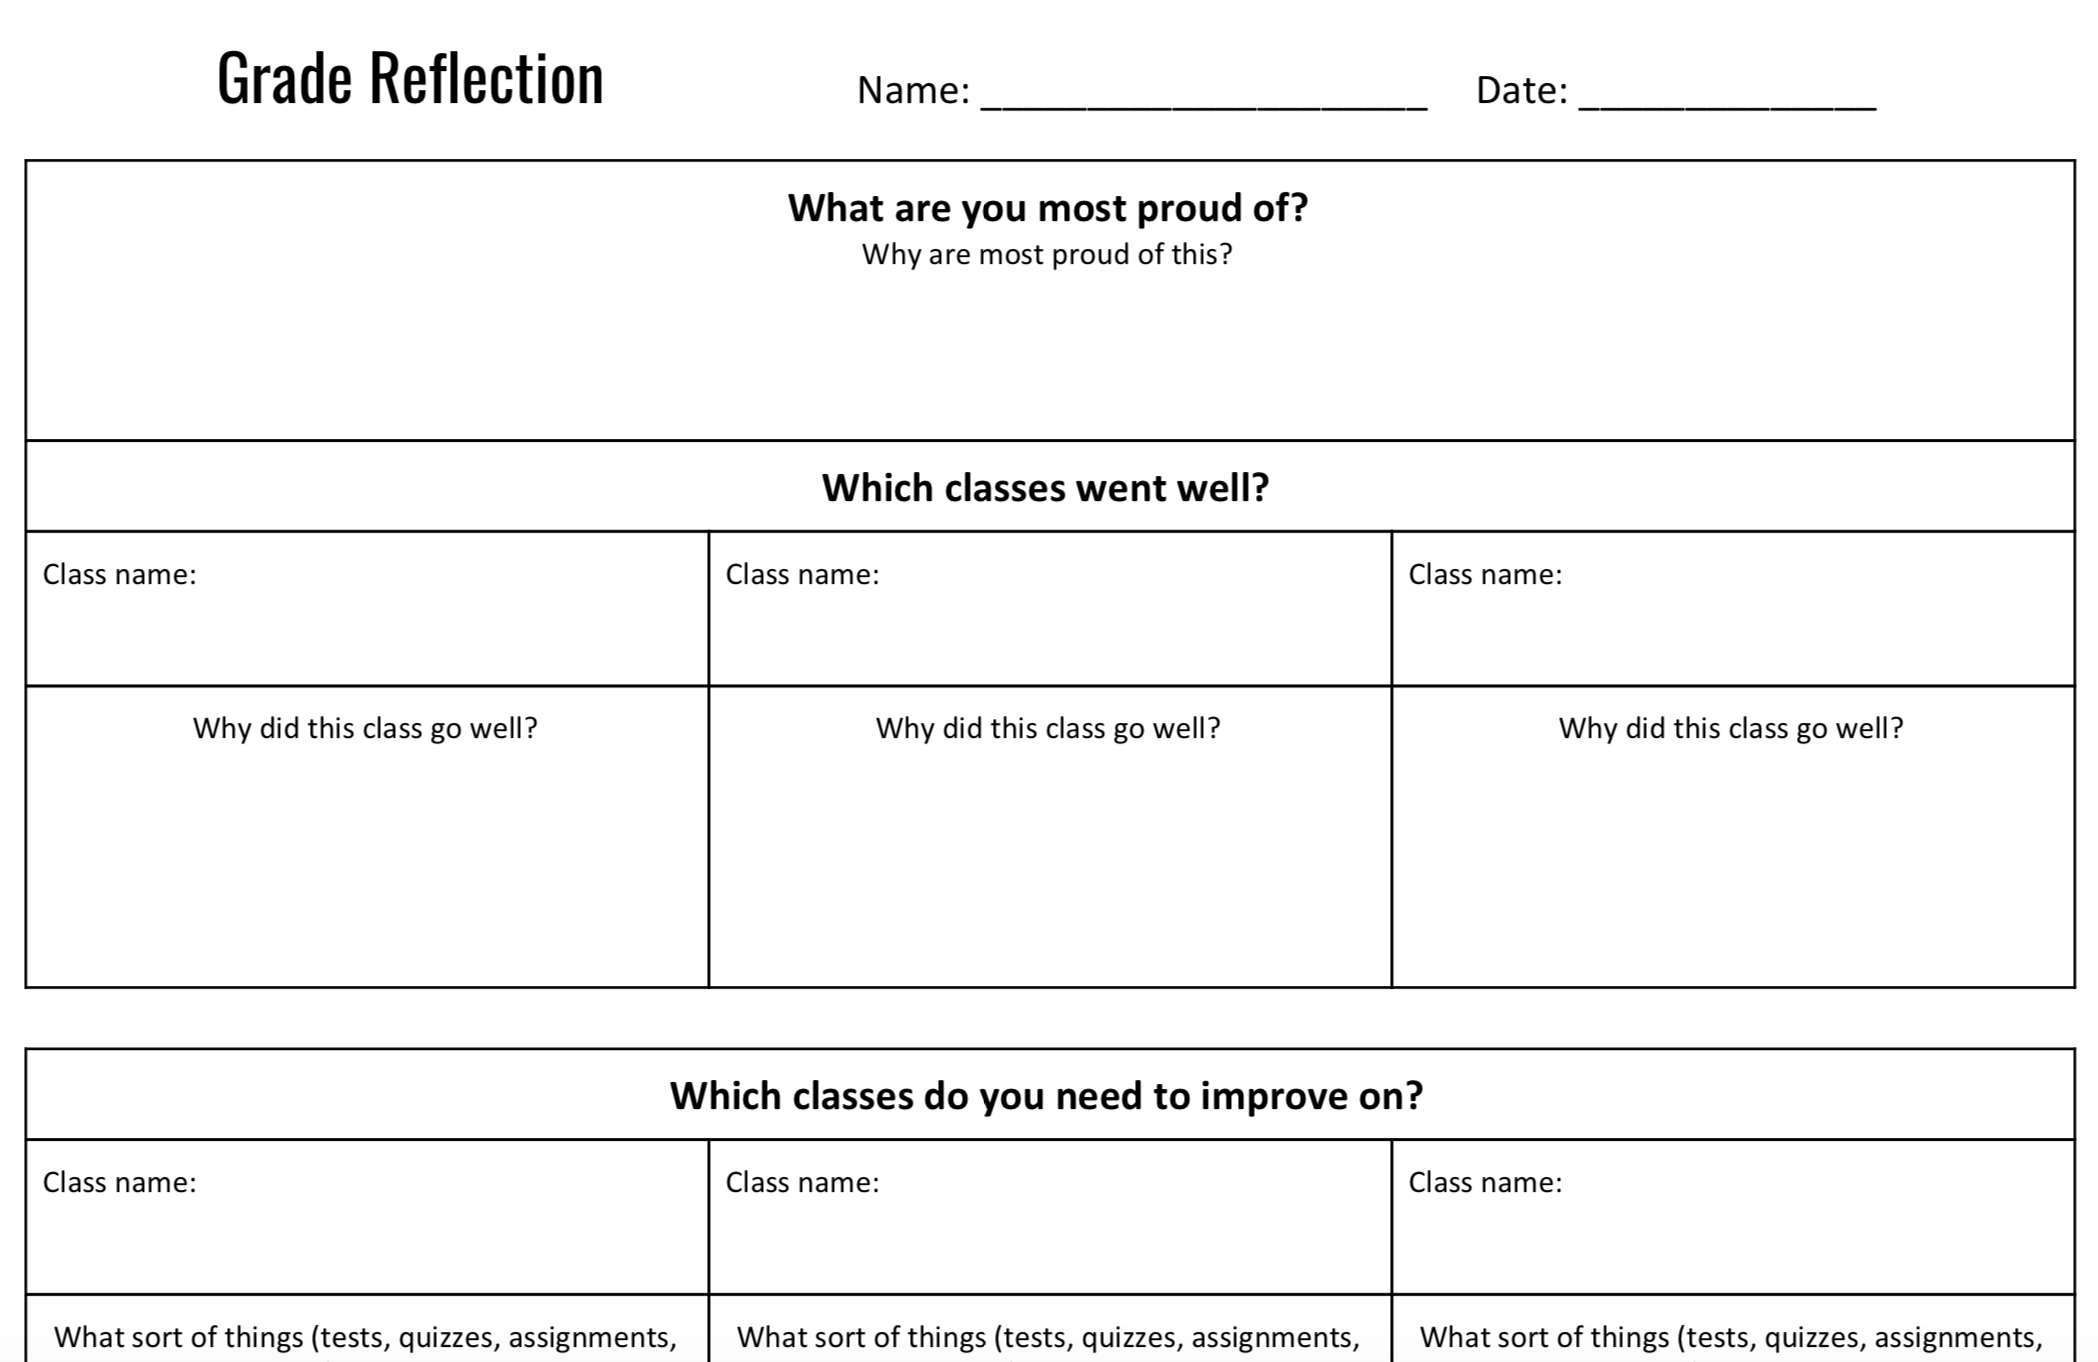 Grade Reflection Worksheet (Middle School)